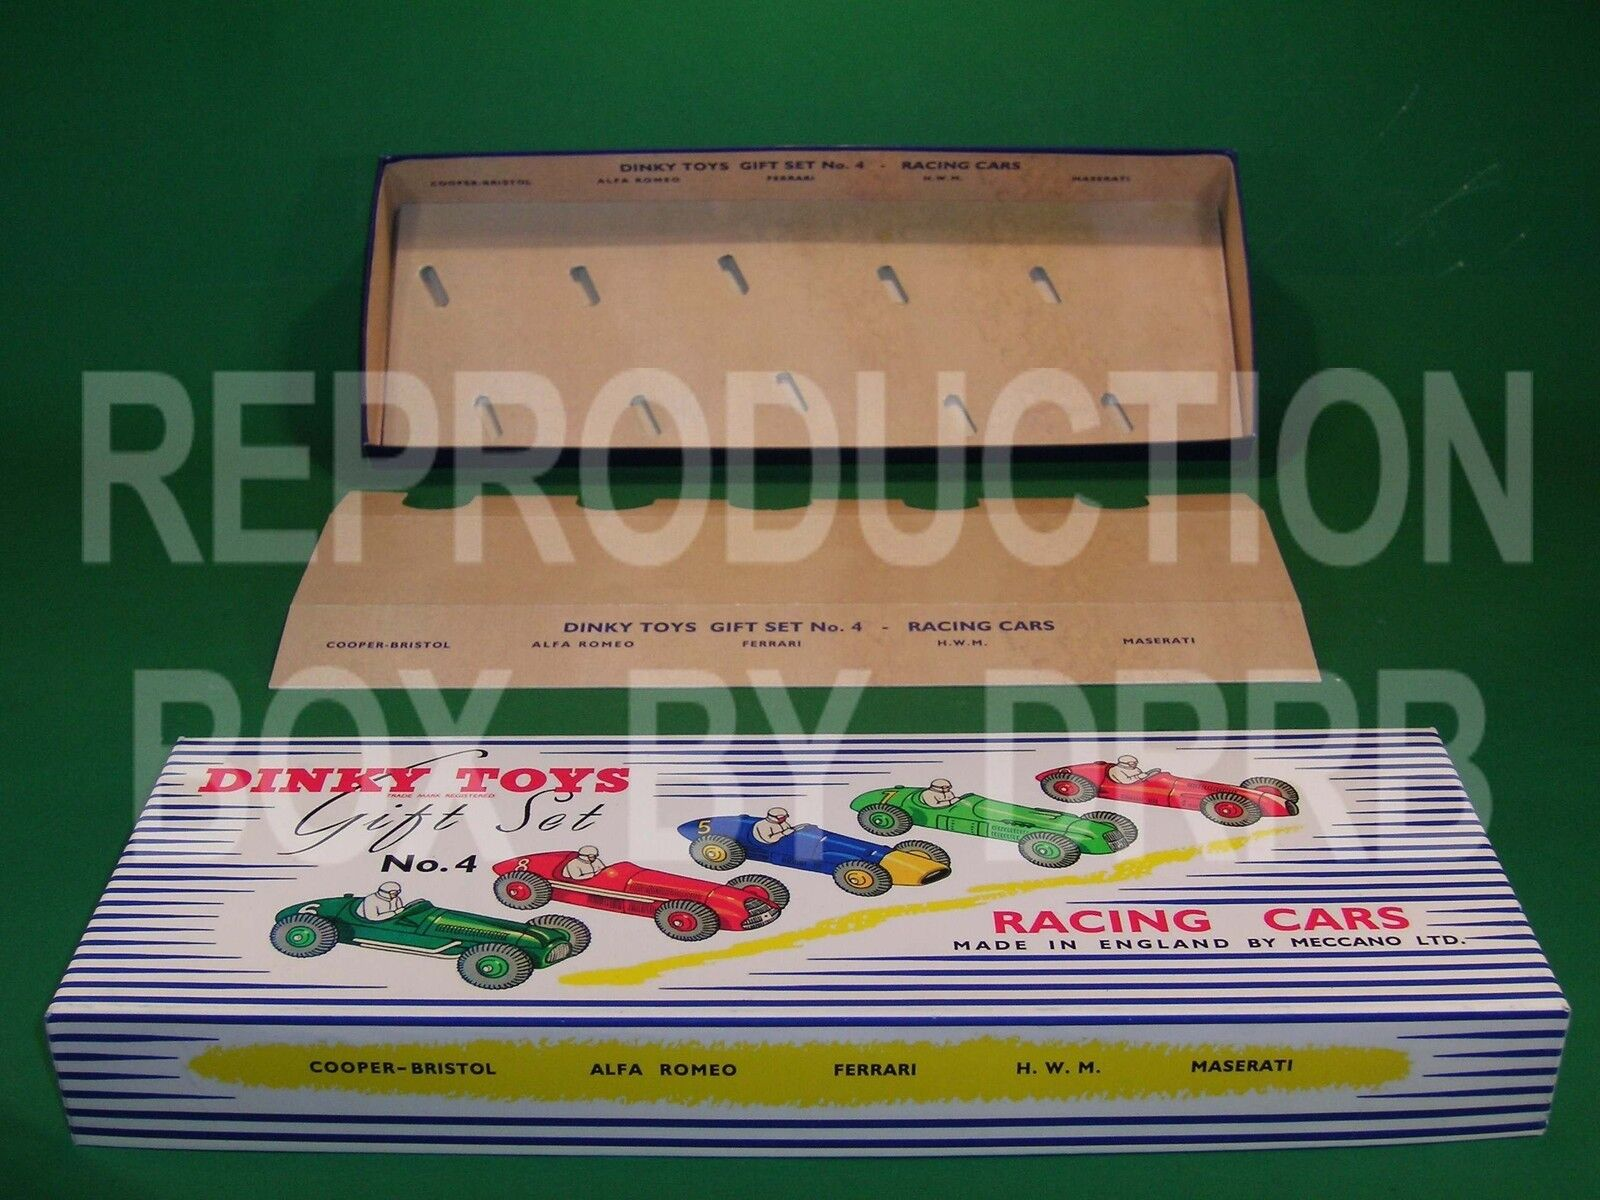 Dinky (Gift Set 4) Racing Cars - Reproduction Box by DRRB